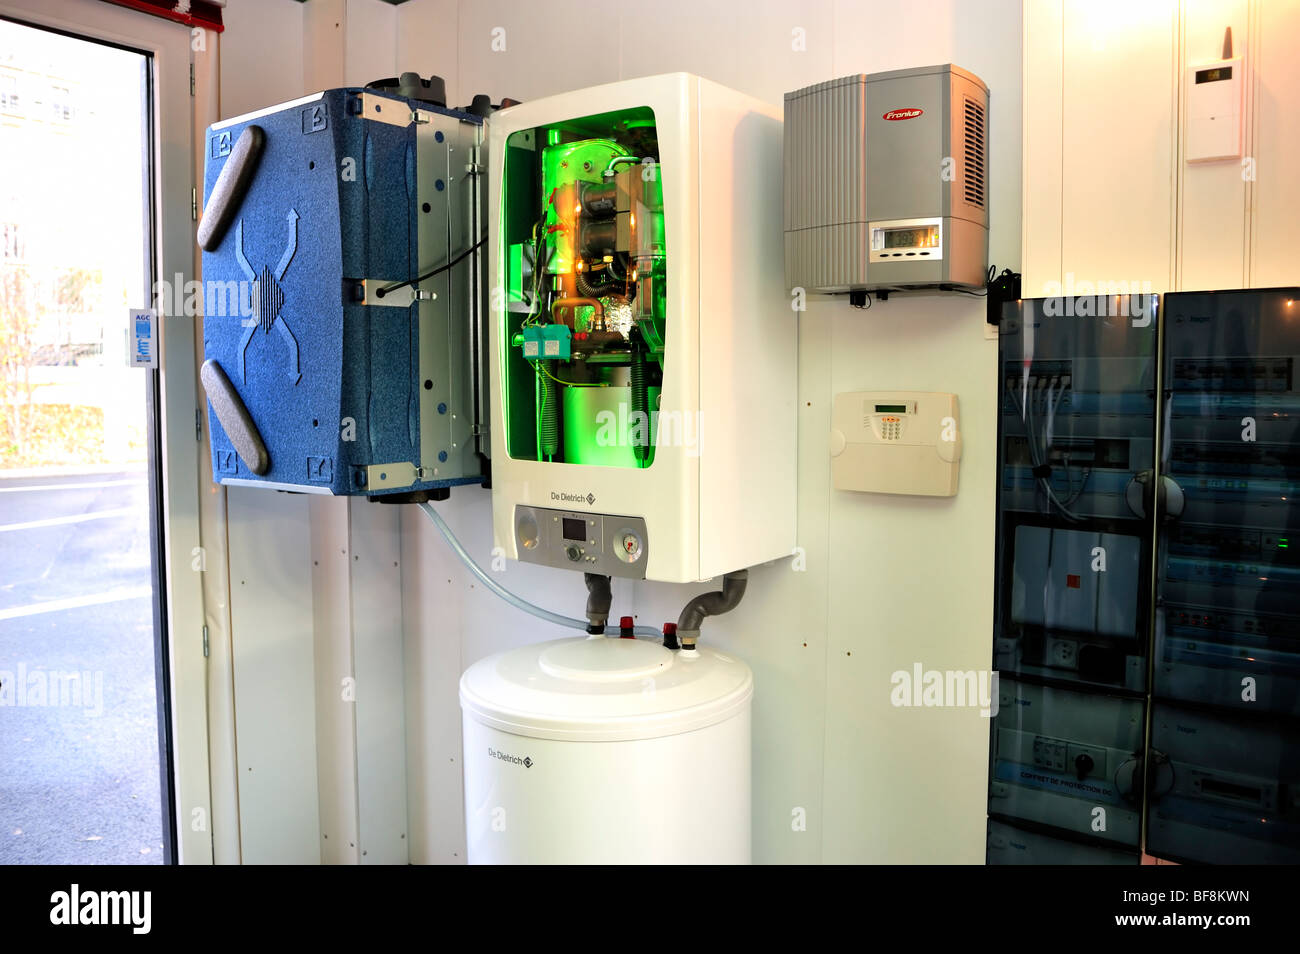 Home improvements, Boiler, Be-Green Eco House, Detail, Heating Installation, Boiler - Stock Image